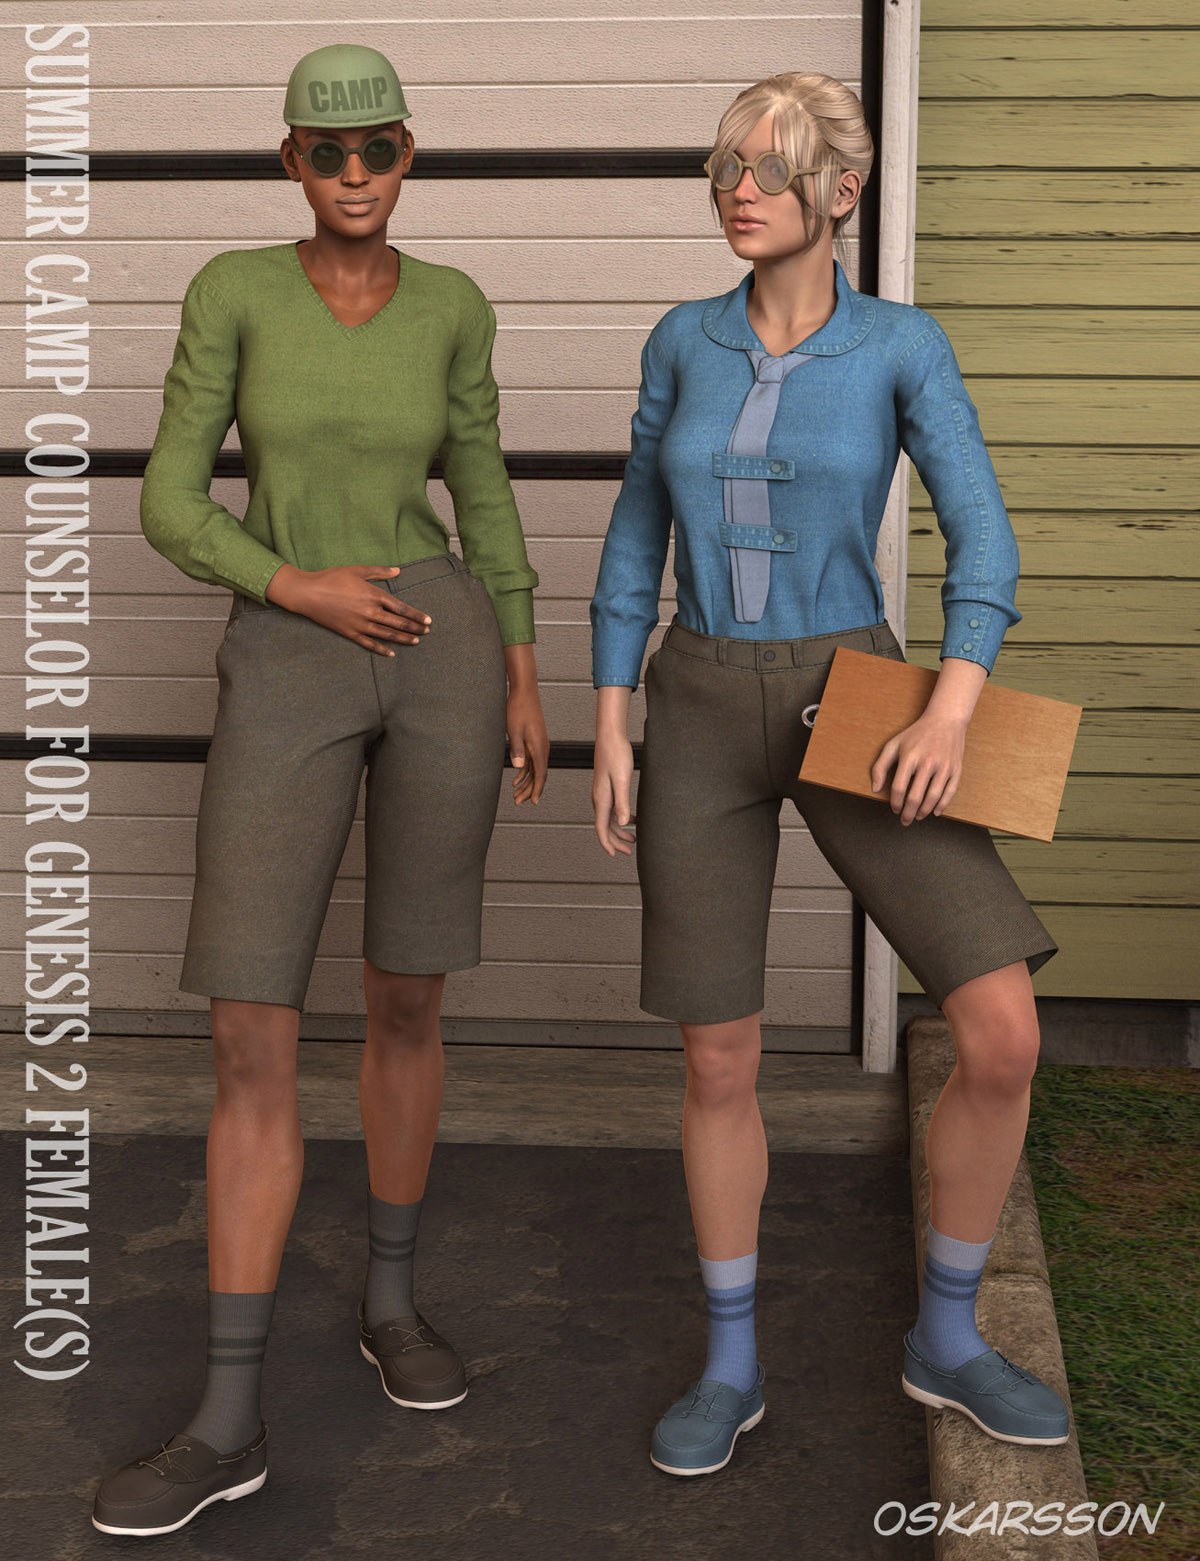 Summer Camp Counselor for Genesis 2 Female(s)